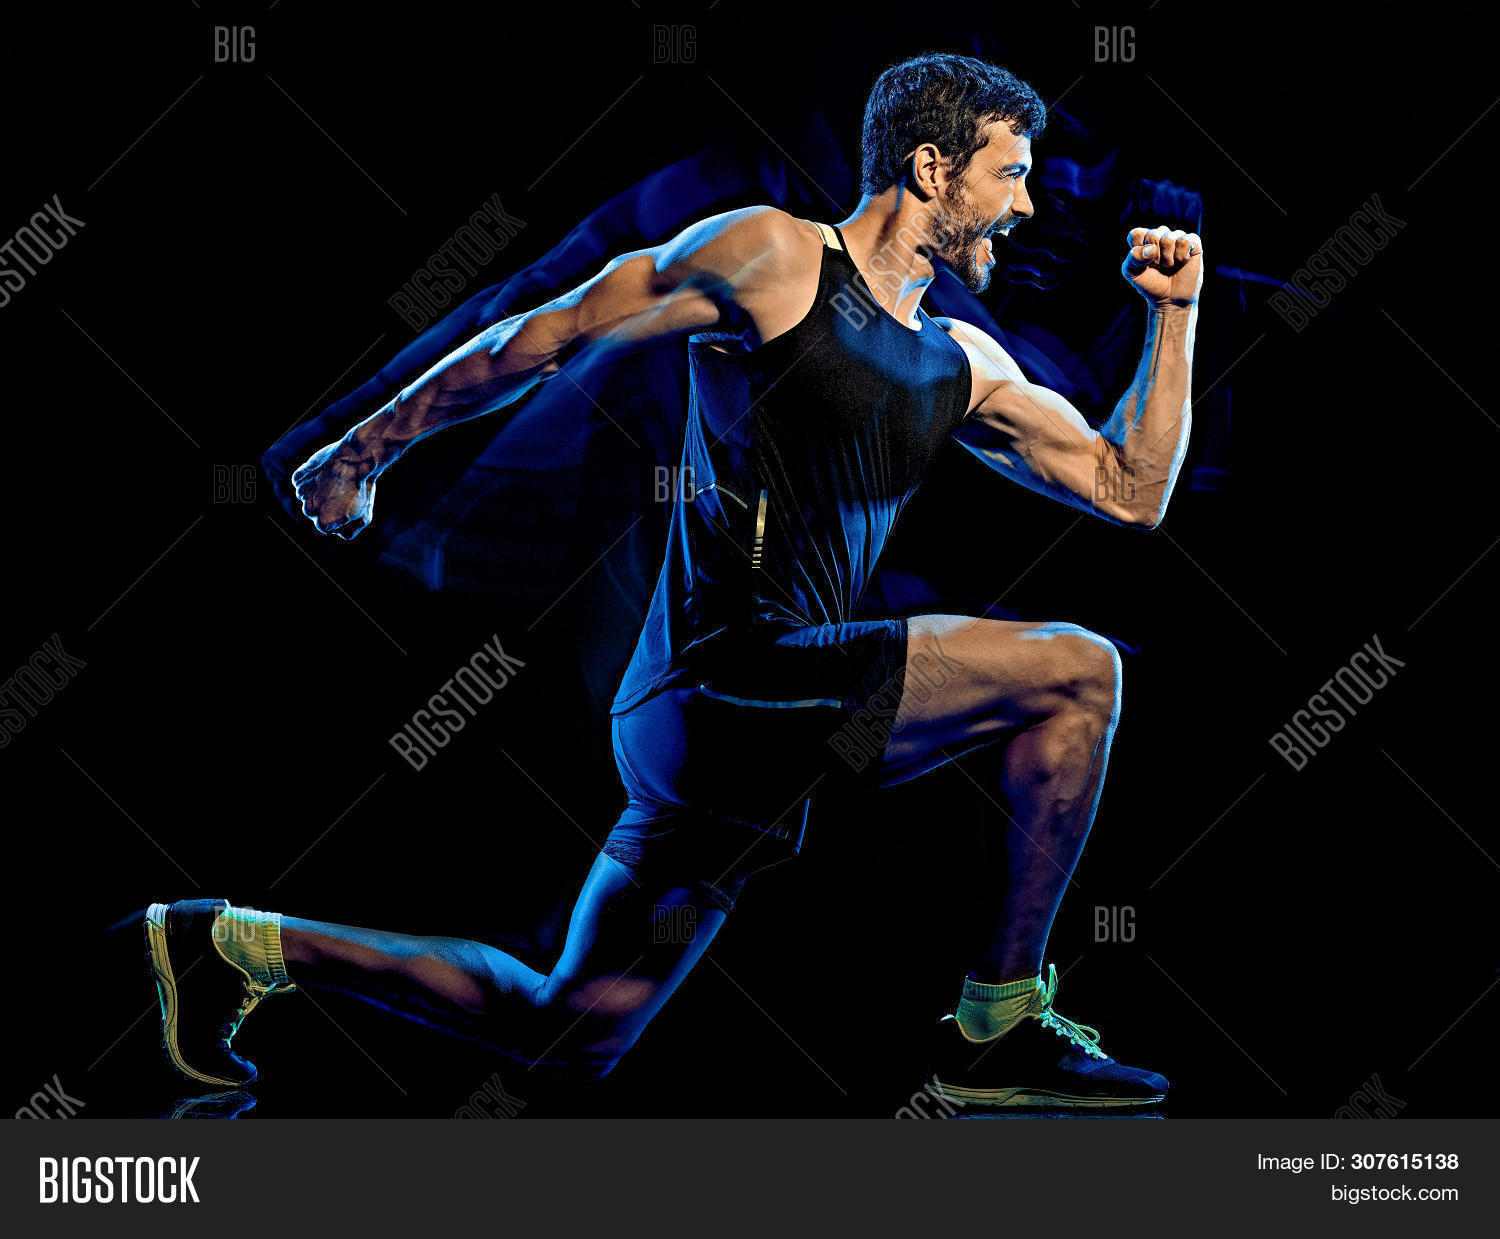 aerobics,black background,body attack,body combat,cardio,cardio boxing,caucasian,crouching,cut out,exercises,exercising,fitness,full length,gym,happy,isolated,joy,lunges,male,man,mature,mills,muscles,muscular,one,people,person,piloxing,profile,side view,silhouette,sport,squats,studio shot,training,white,workout